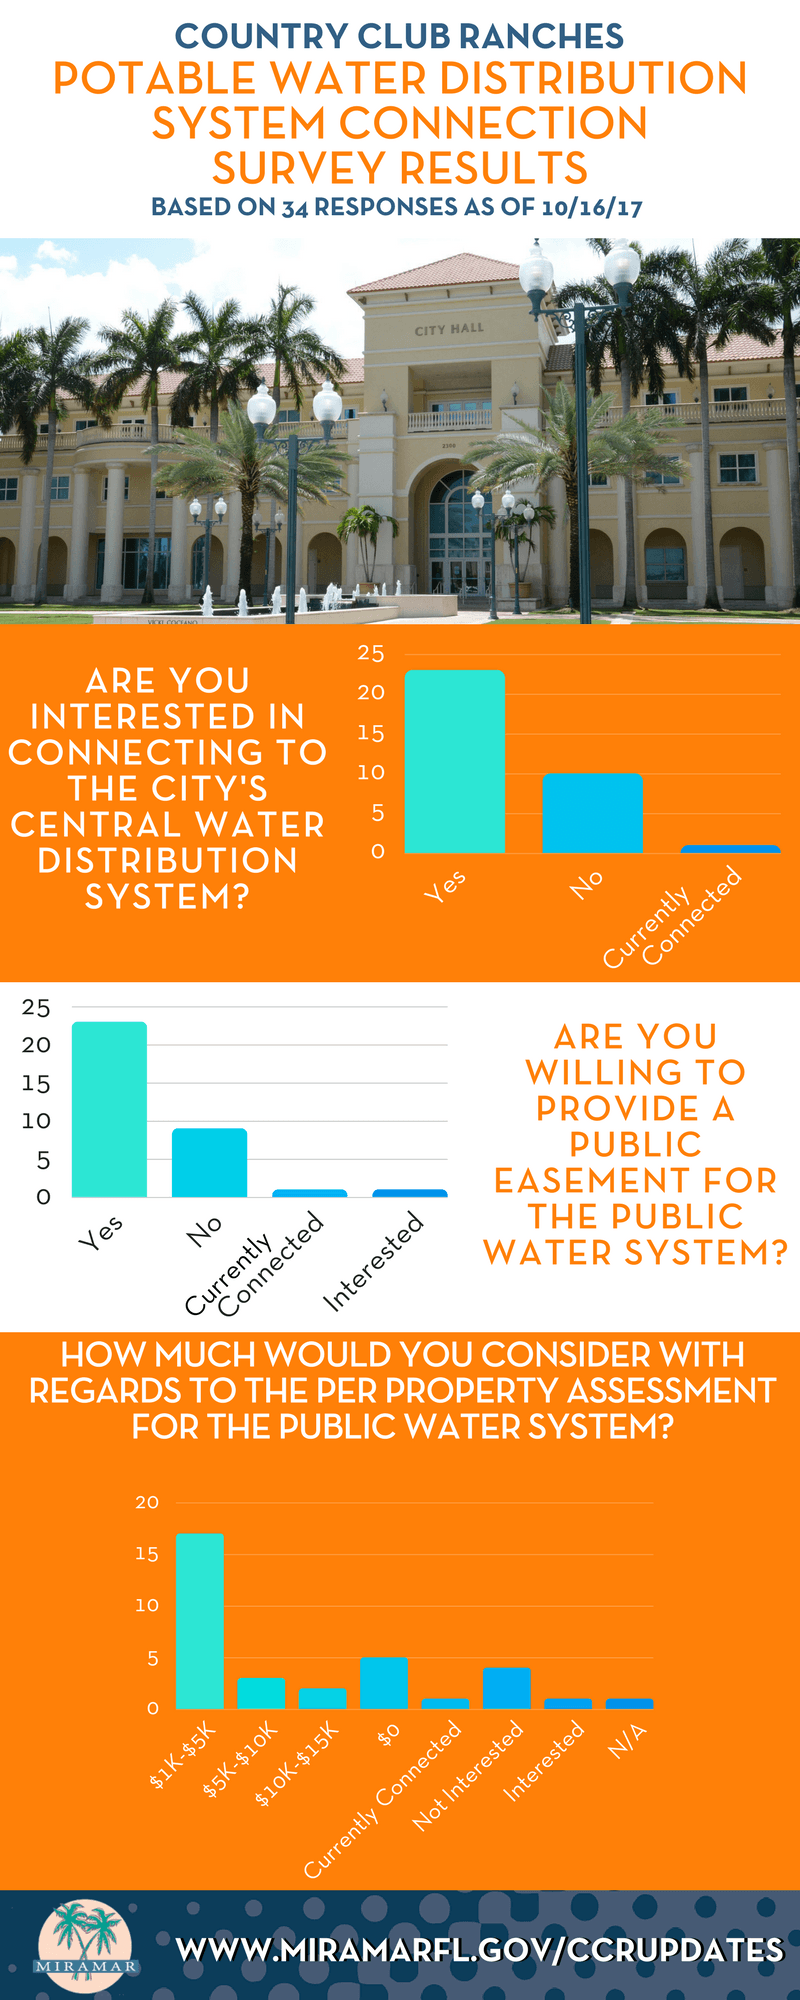 CCR POTABLE WATER DISTRIBUTION SYSTEM CONNECTION SURVEY RESULTS 10172017 (3)